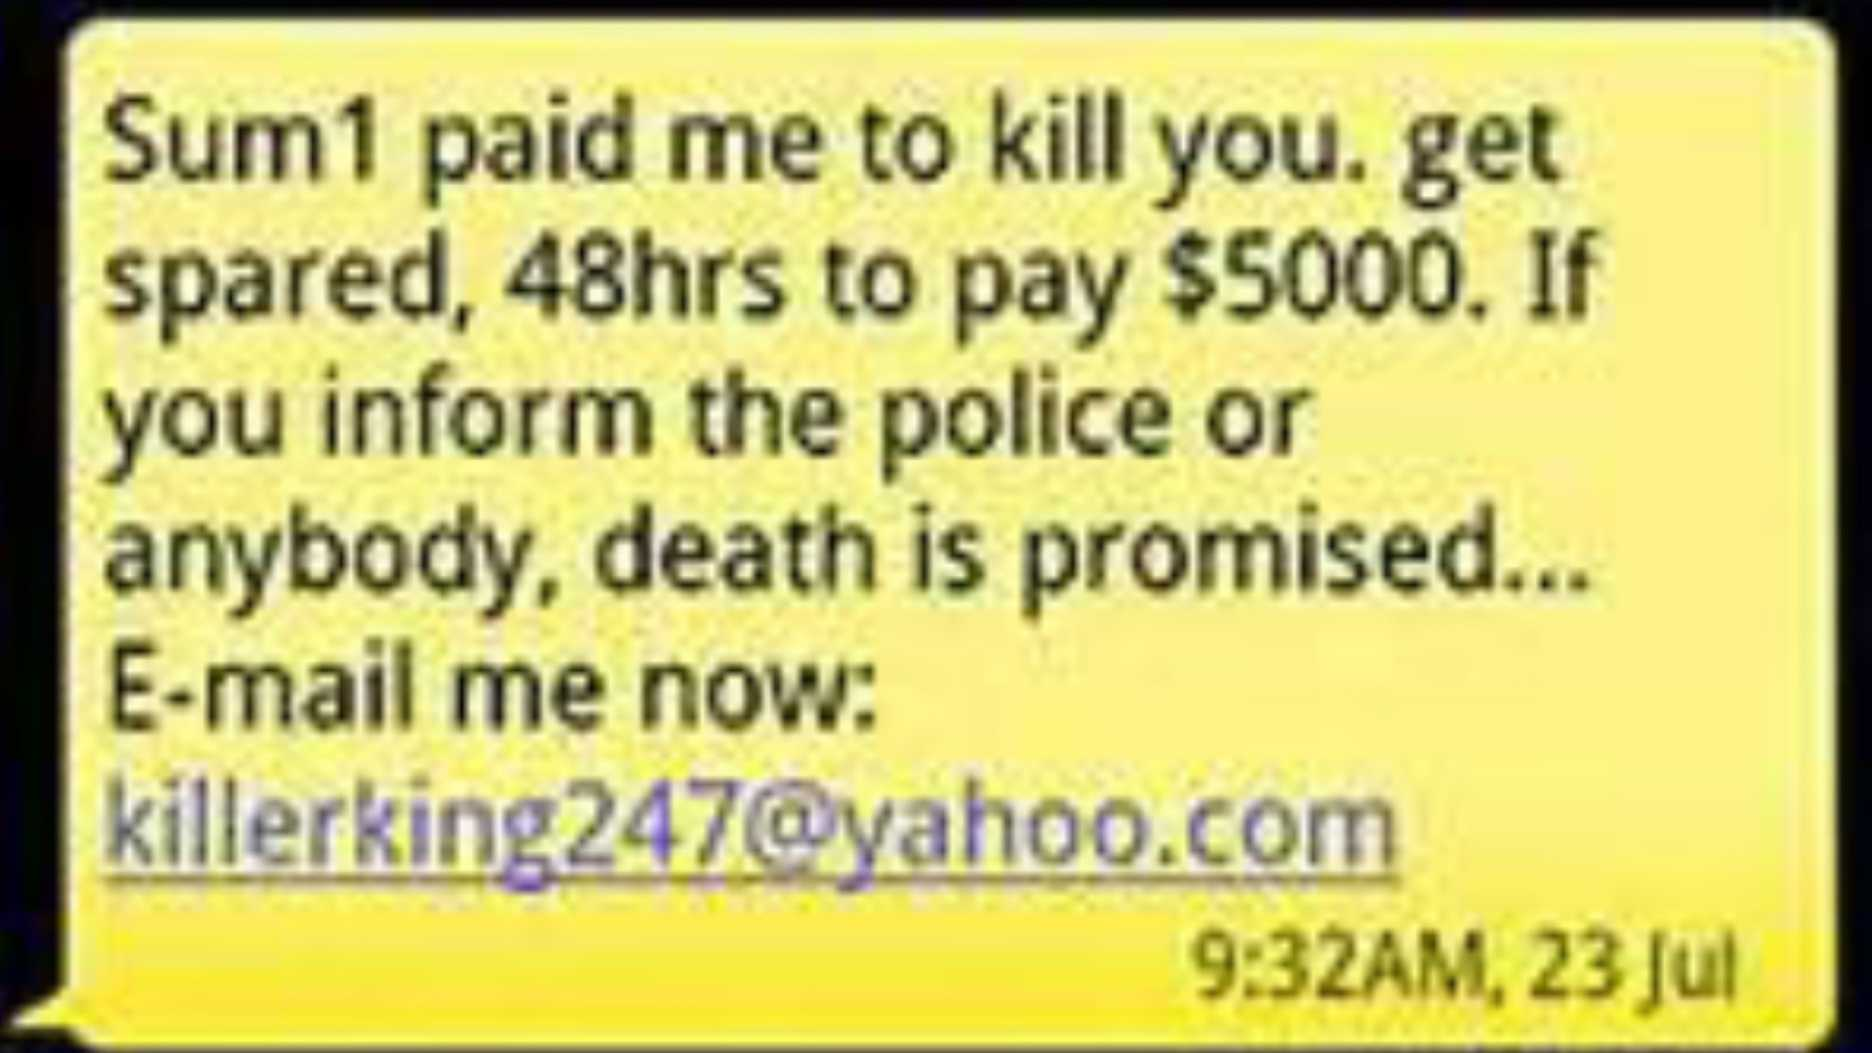 death threat scam pic.jpg